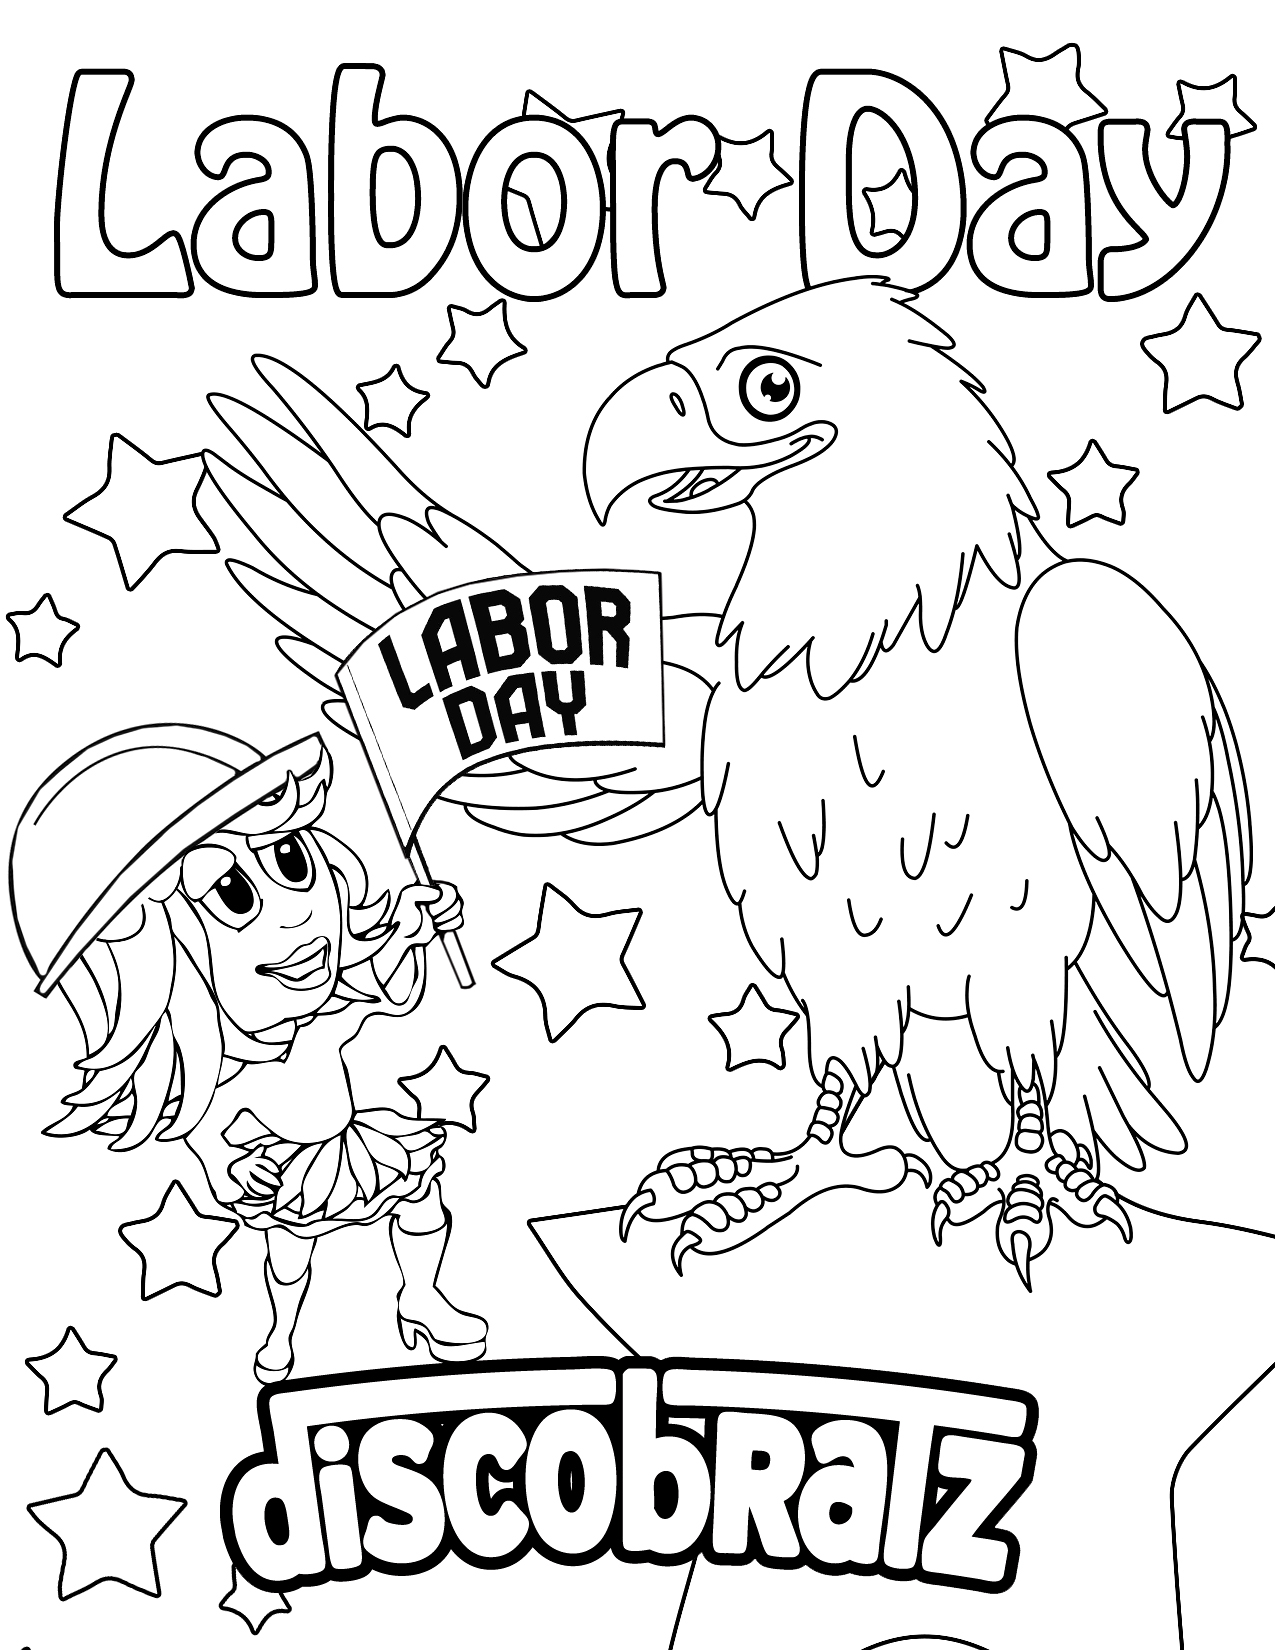 labor day coloring pages free printable labor day made in the usa coloring page free printable coloring free day pages printable labor